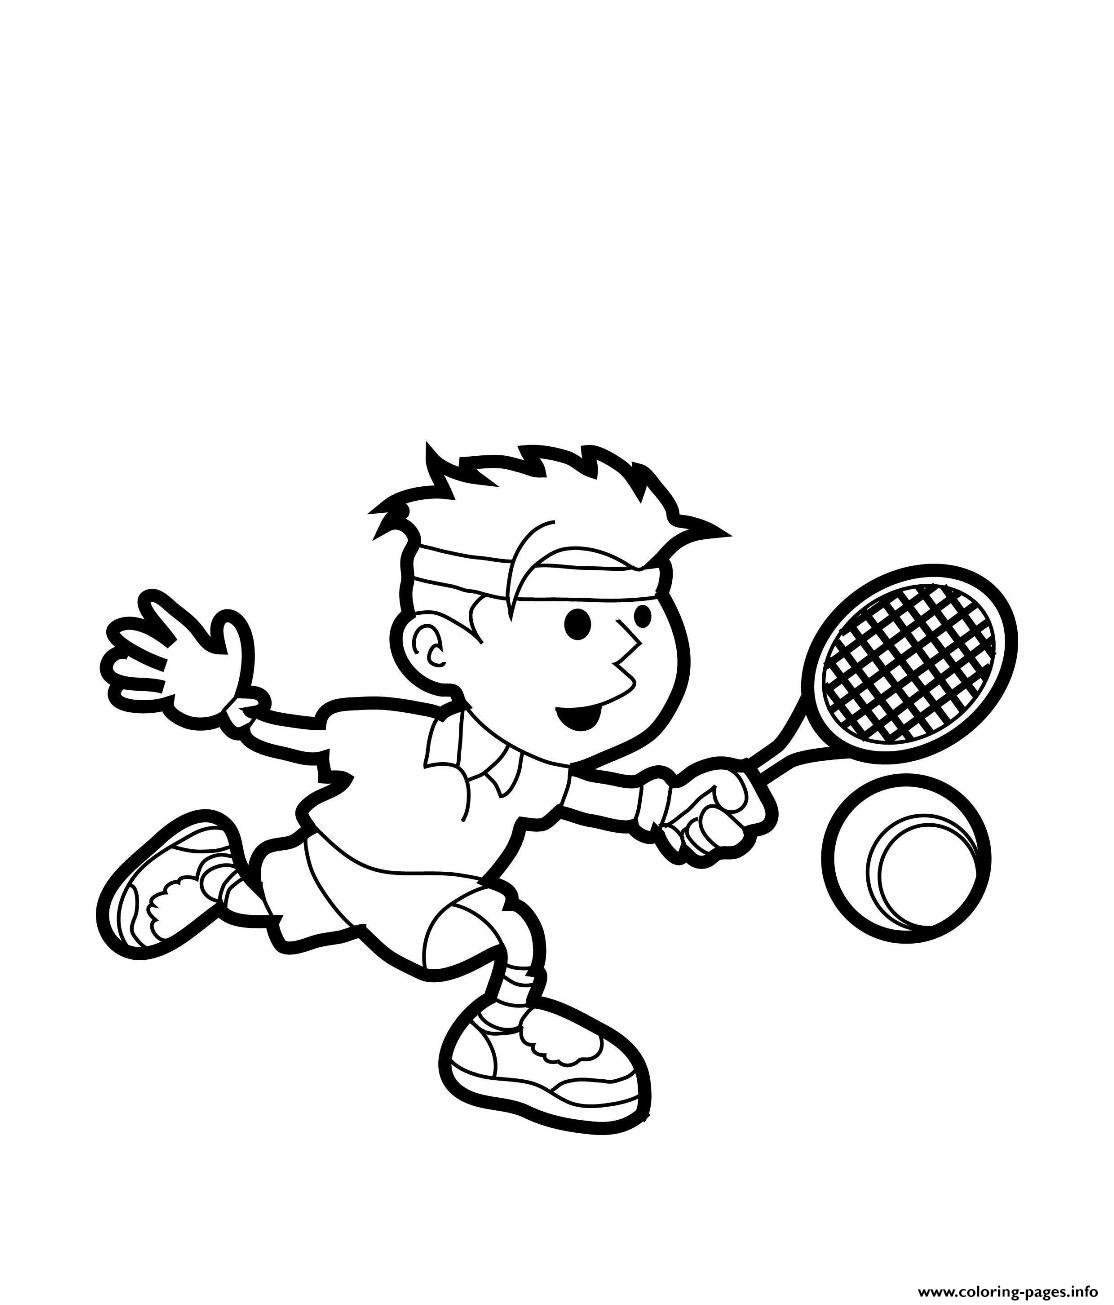 Tennis S Freed668 coloring pages